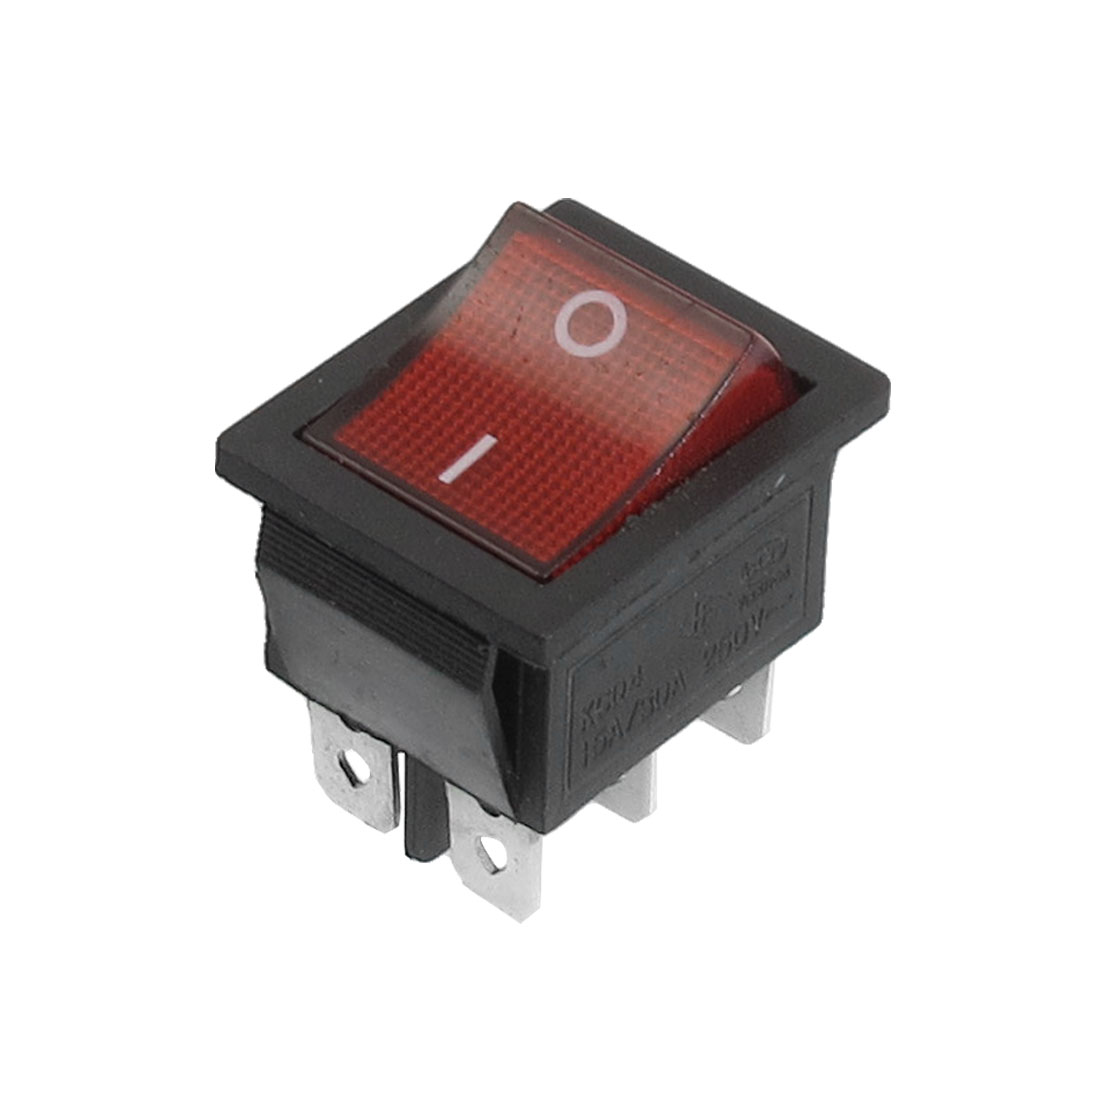 Red Button 6 Pins DPDT On-On Snap in Boat Rocker Switch AC 250V 15/30A